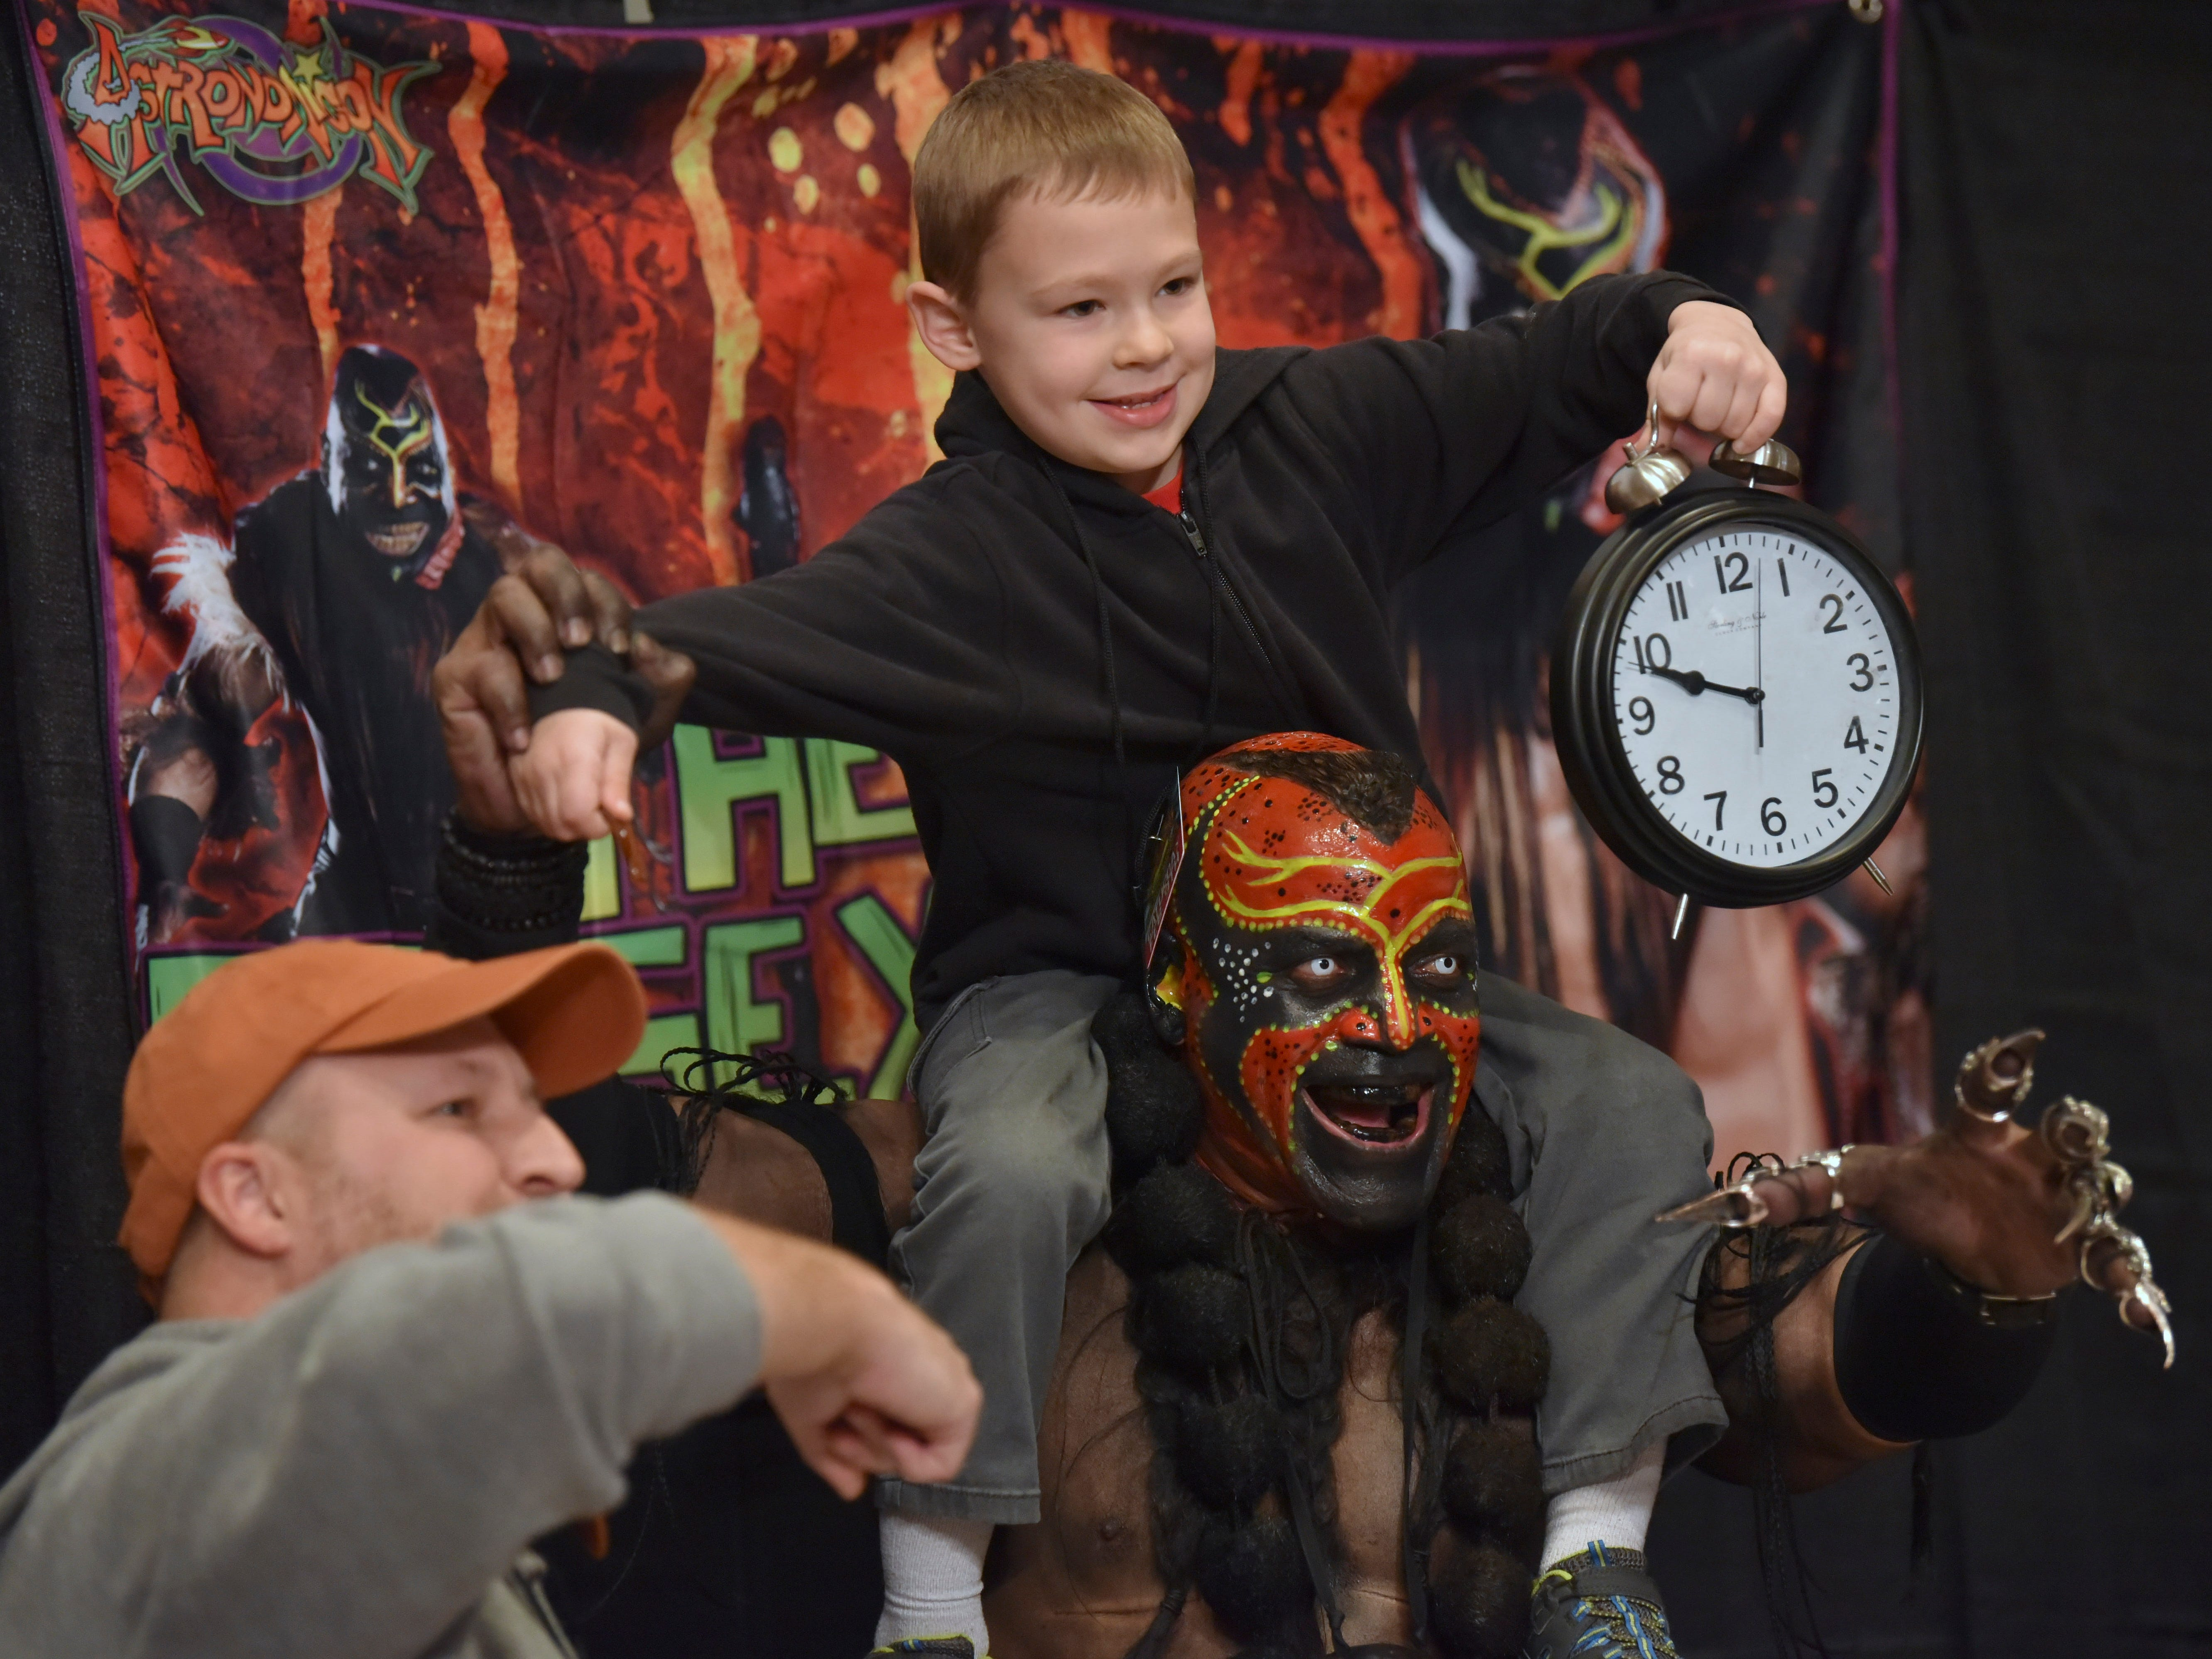 Kyle Anderson, left, 42, and his son, Noah, 6, both of Grand Rapids, pose with WWE Superstar wrestler 'The Boogeyman,' portrayed by Marty Wright, of Denver, Colorado.